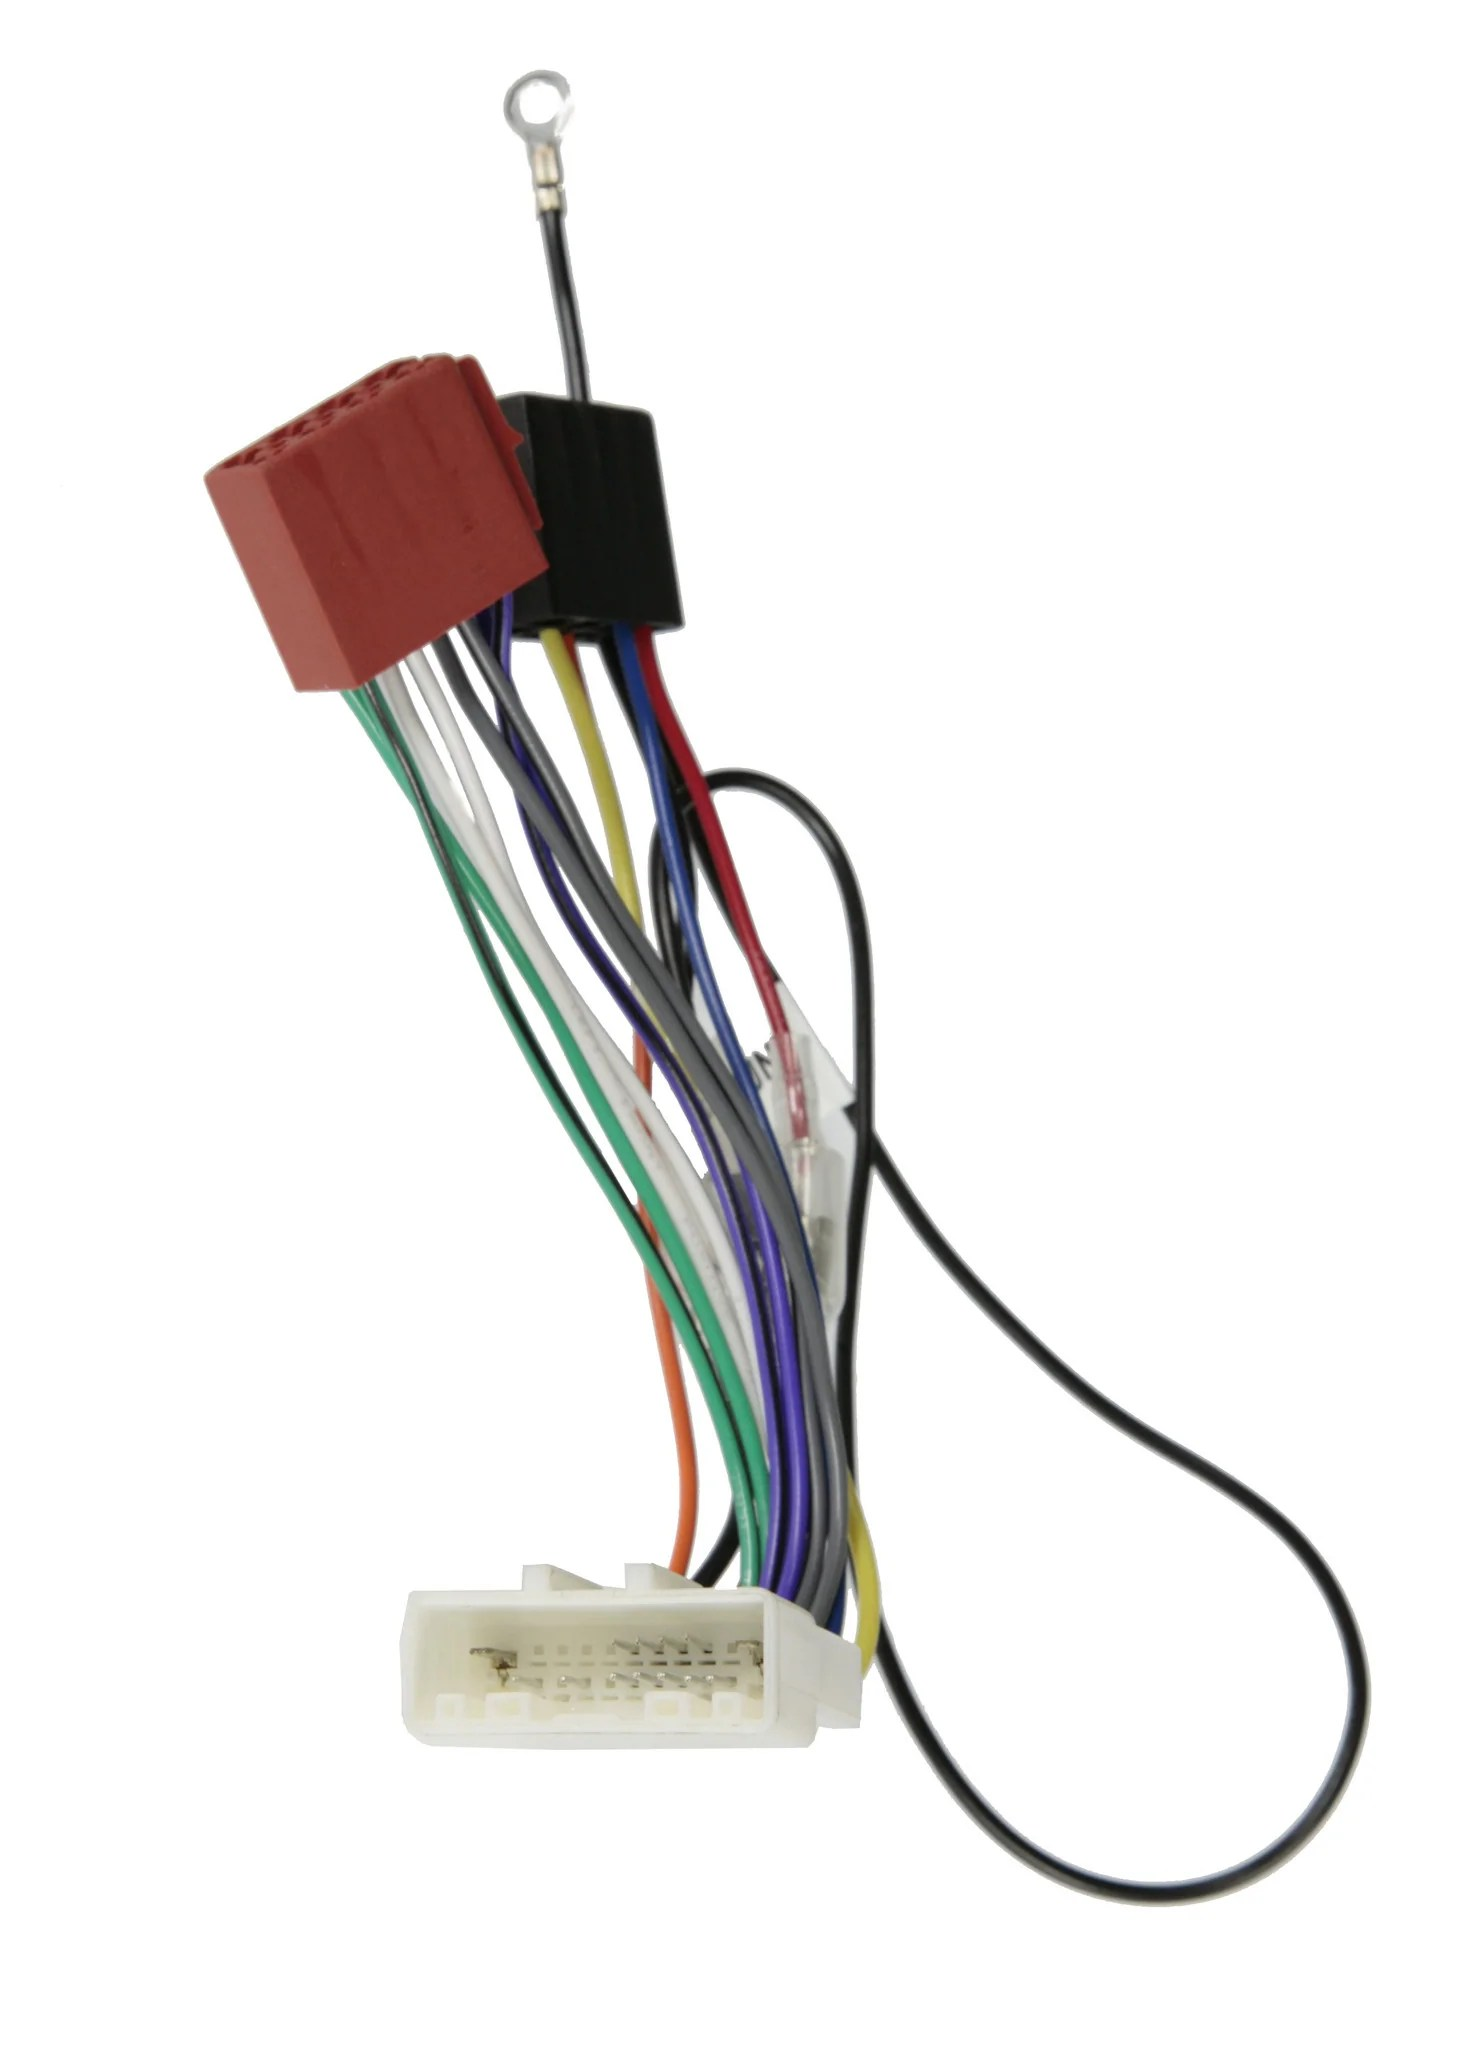 wiring harness adapter for subaru nissan to iso plug app091  [ 1478 x 2048 Pixel ]